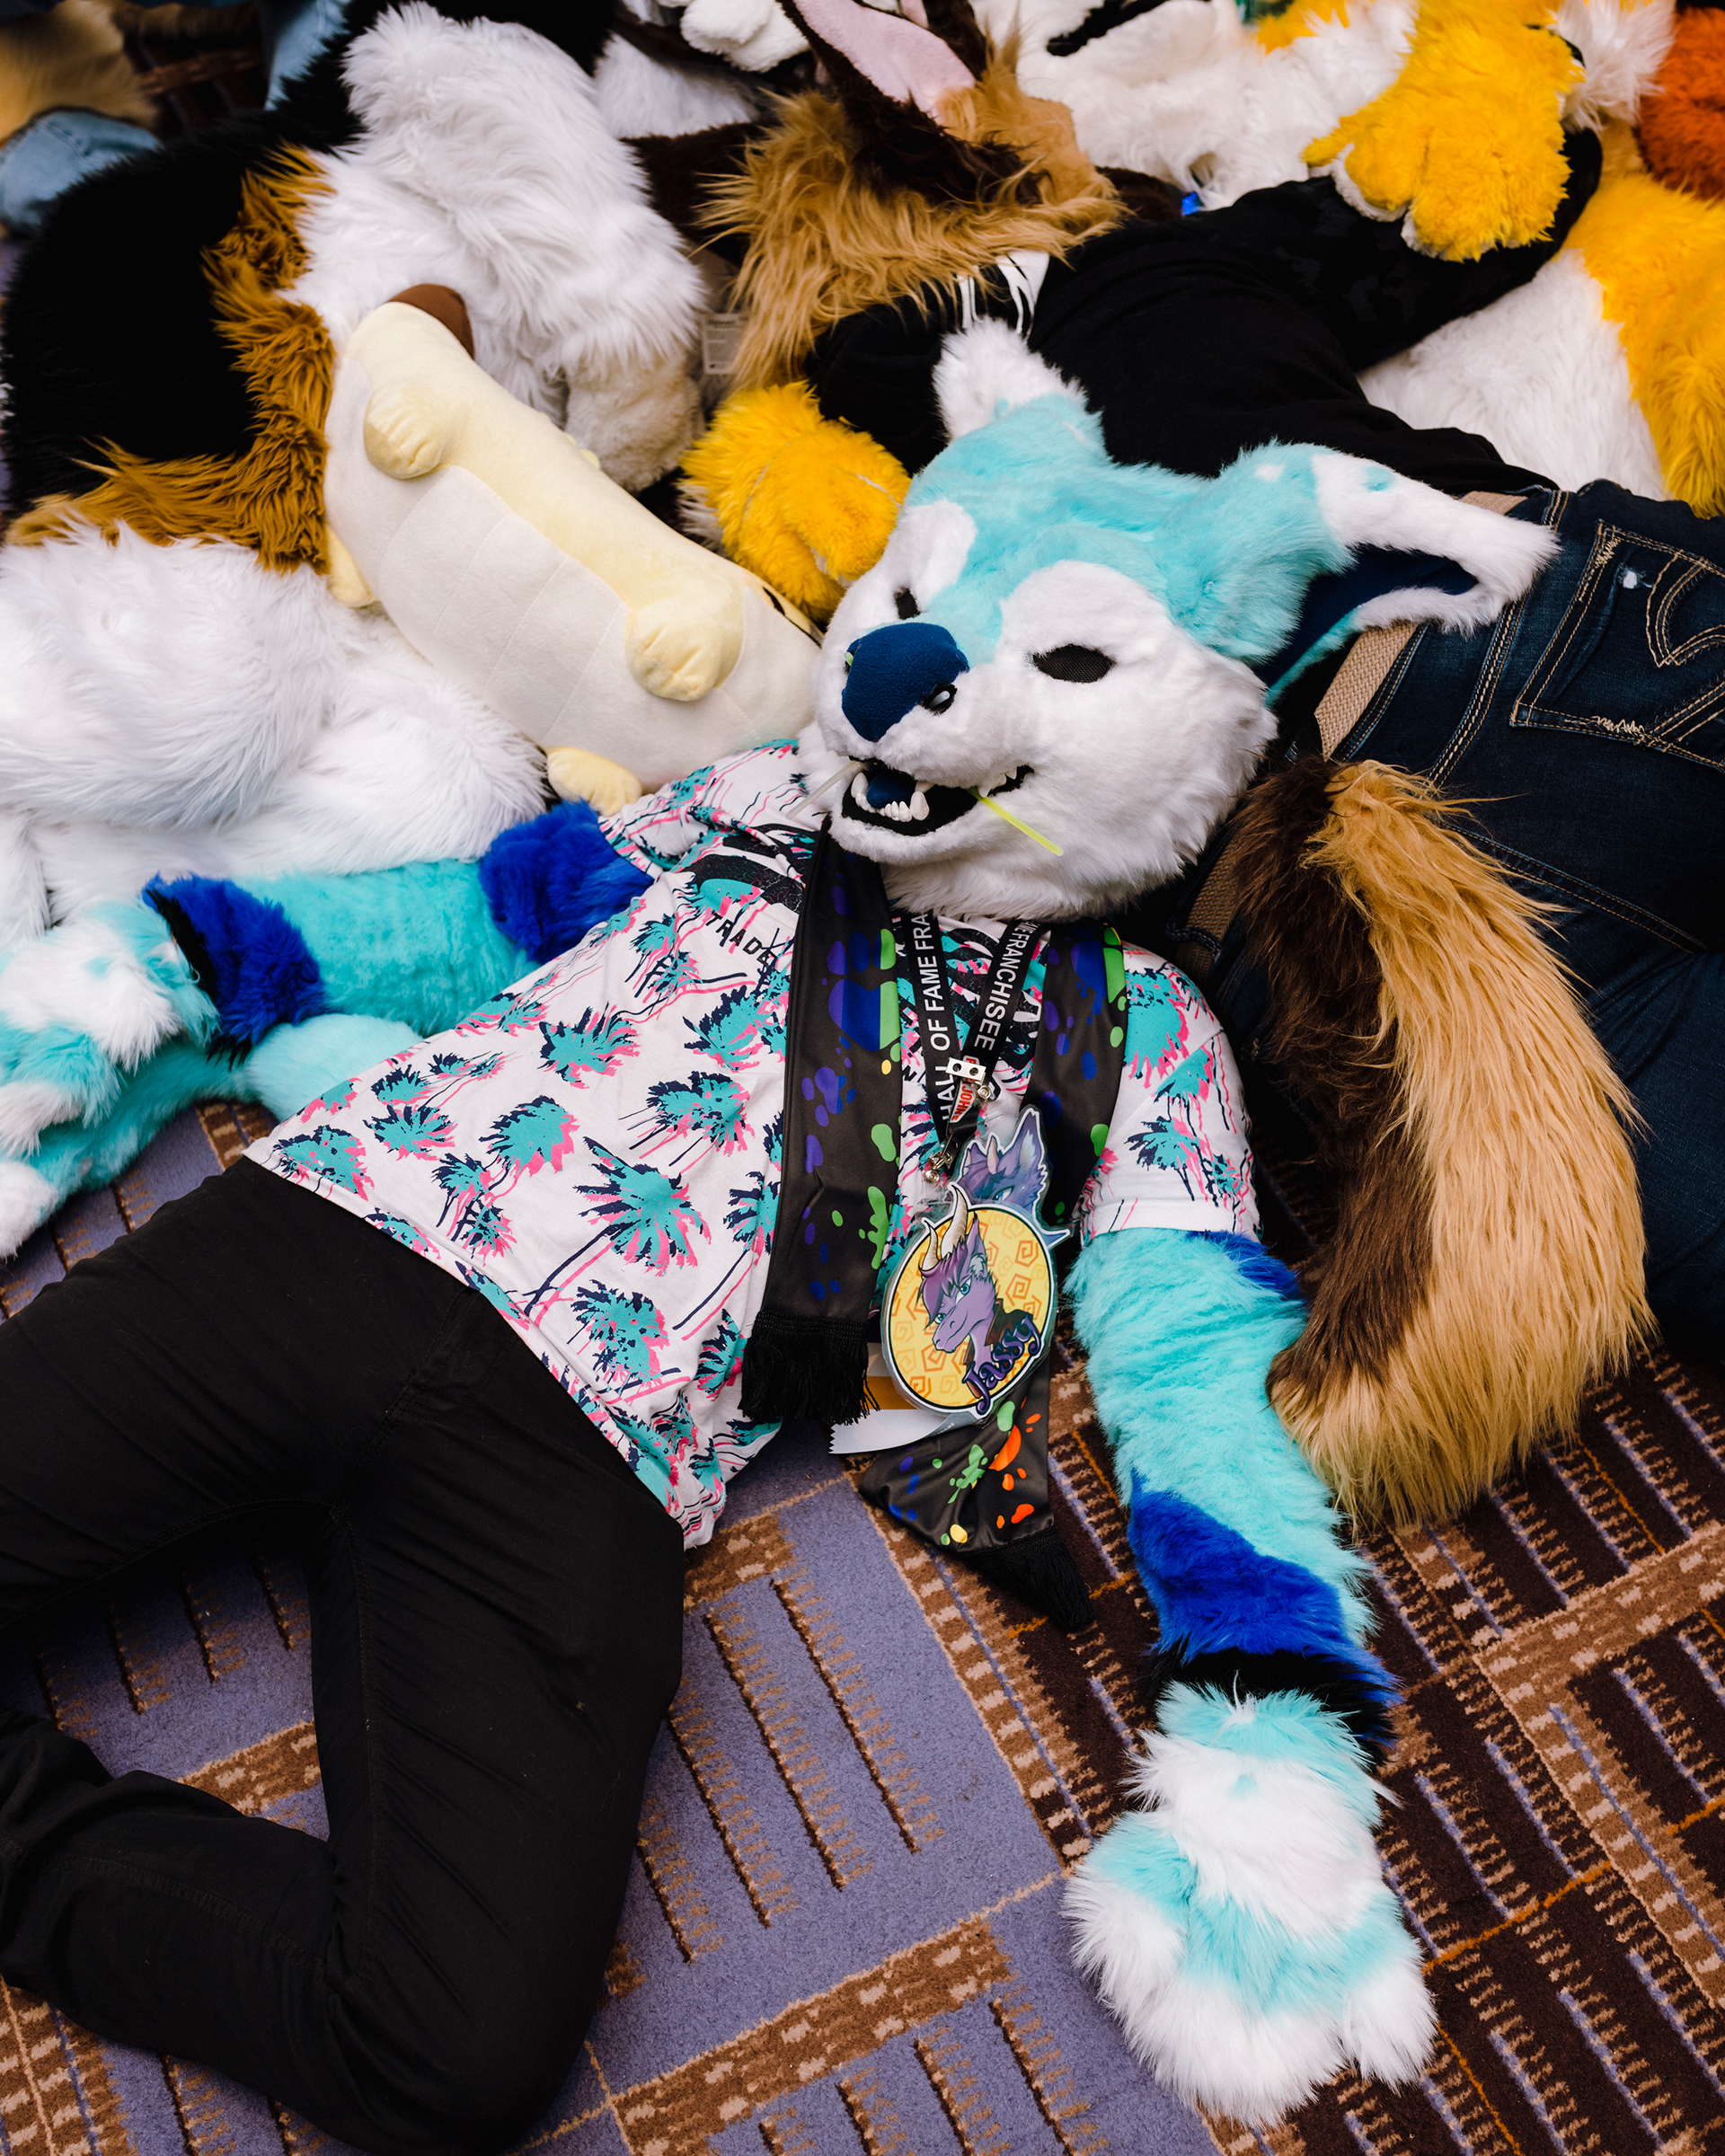 December 4th, 2019 - Rosemont, IL - Midwest Furr Fest at Donald E. Stephens Convention Center. 'Fur pile' on the convention floor